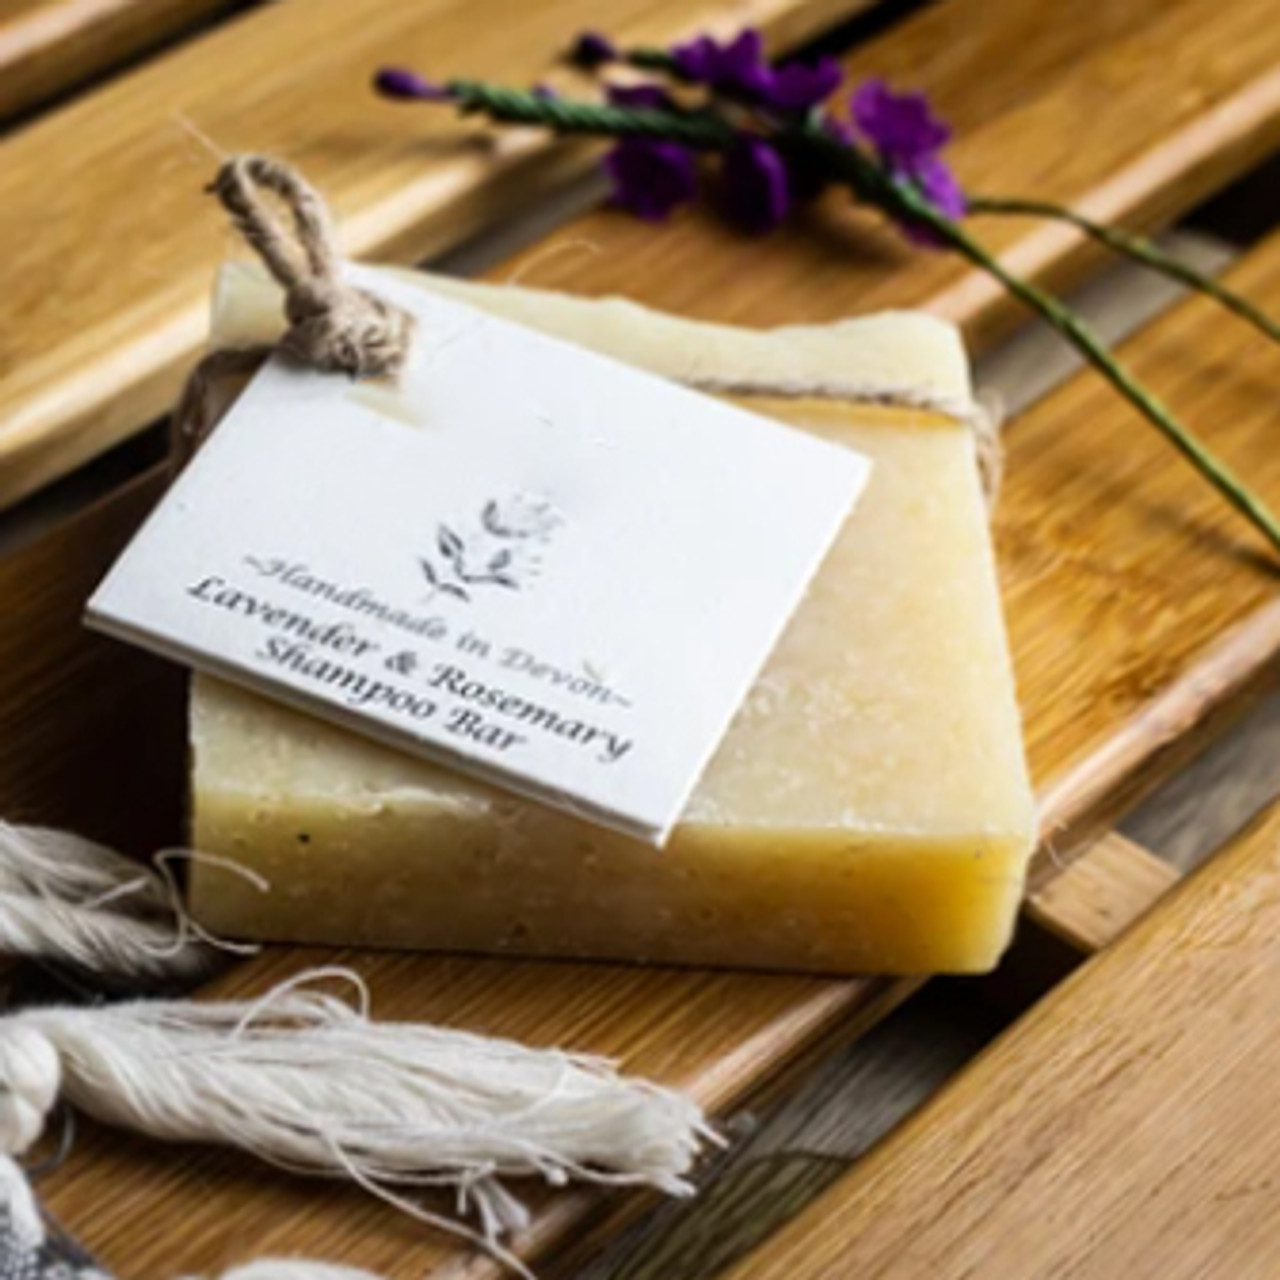 Lavender & Rosemary Natural Solid Shampoo for All Hair types.